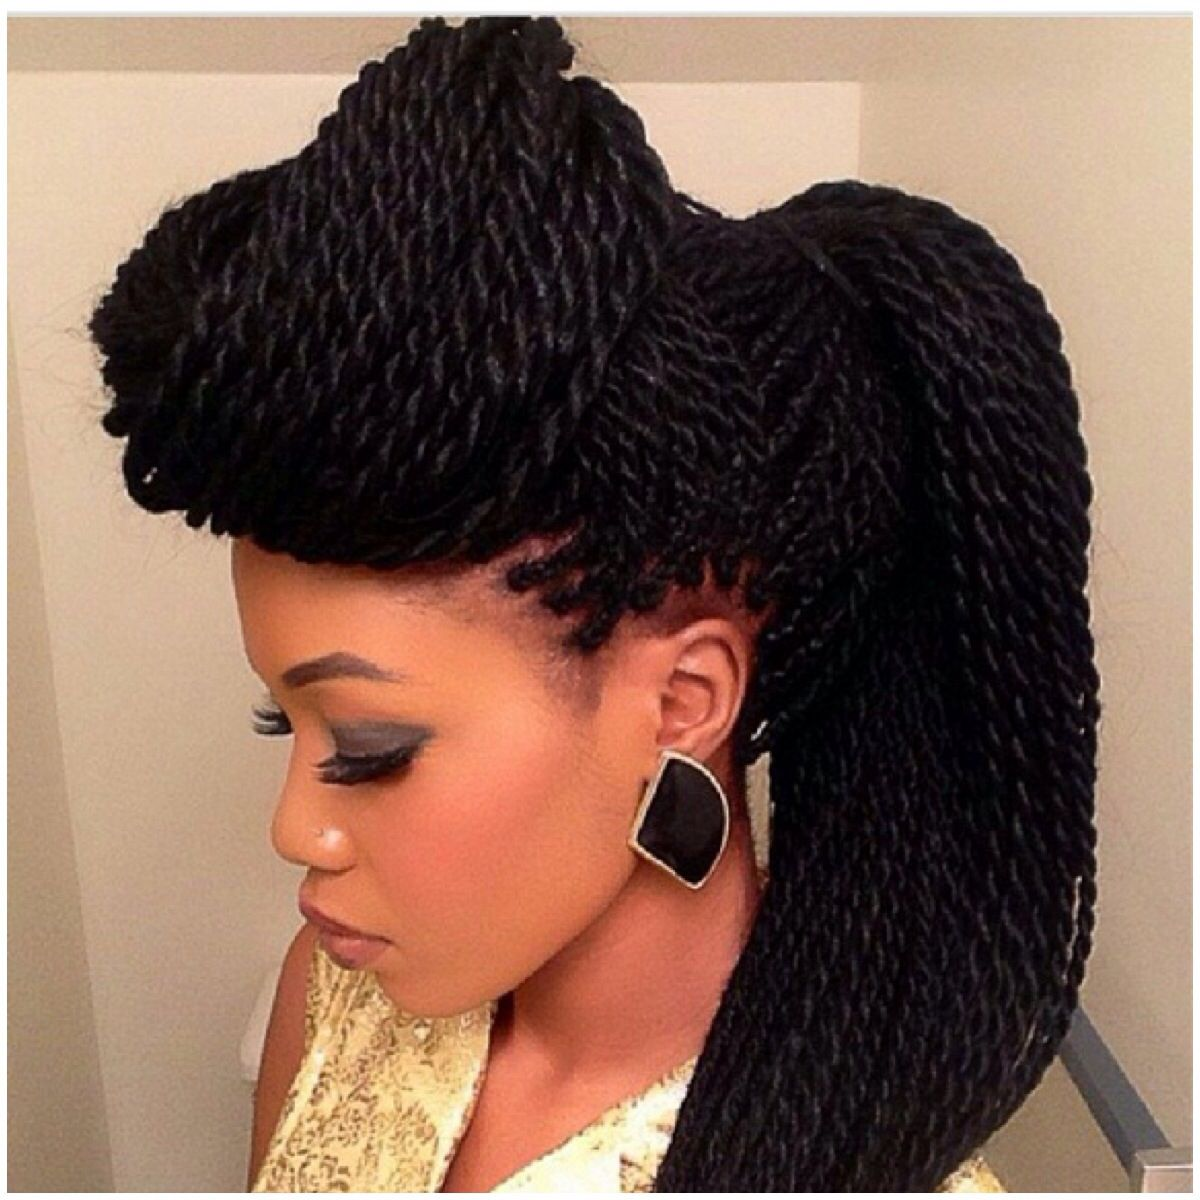 Crochet Braids East London : ... Crochet Braids Hair with Natural Box Braids With Own Hair also Box